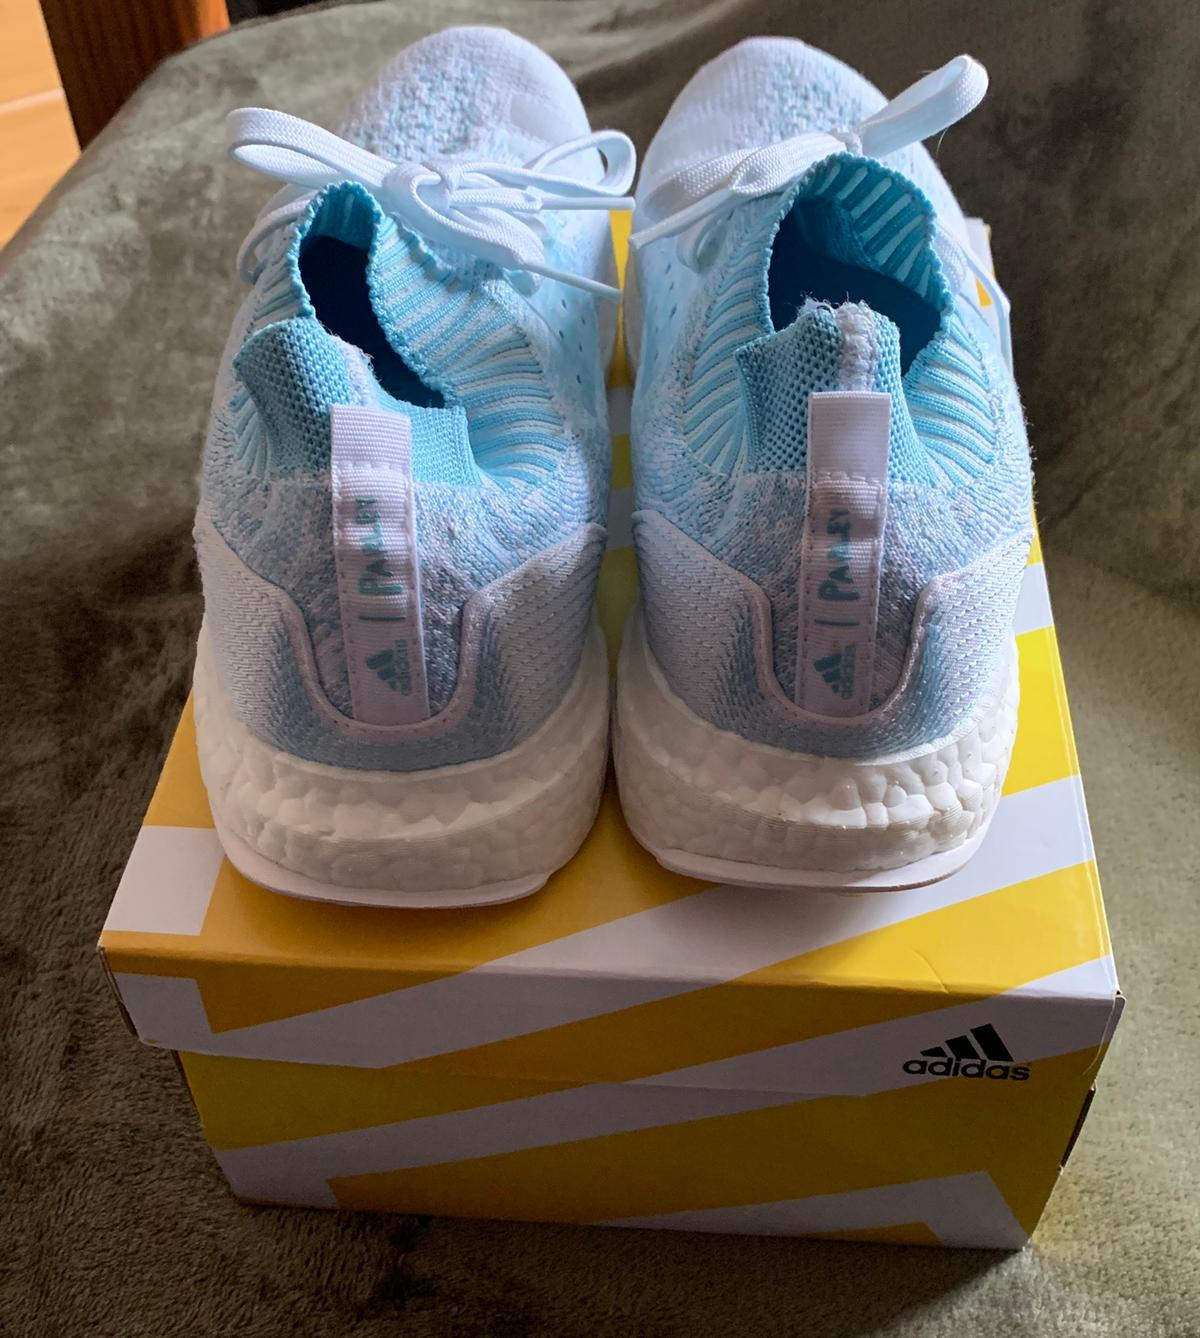 Adidas Ultra Boost Uncaged Ltd Ed Parley in St Helens for